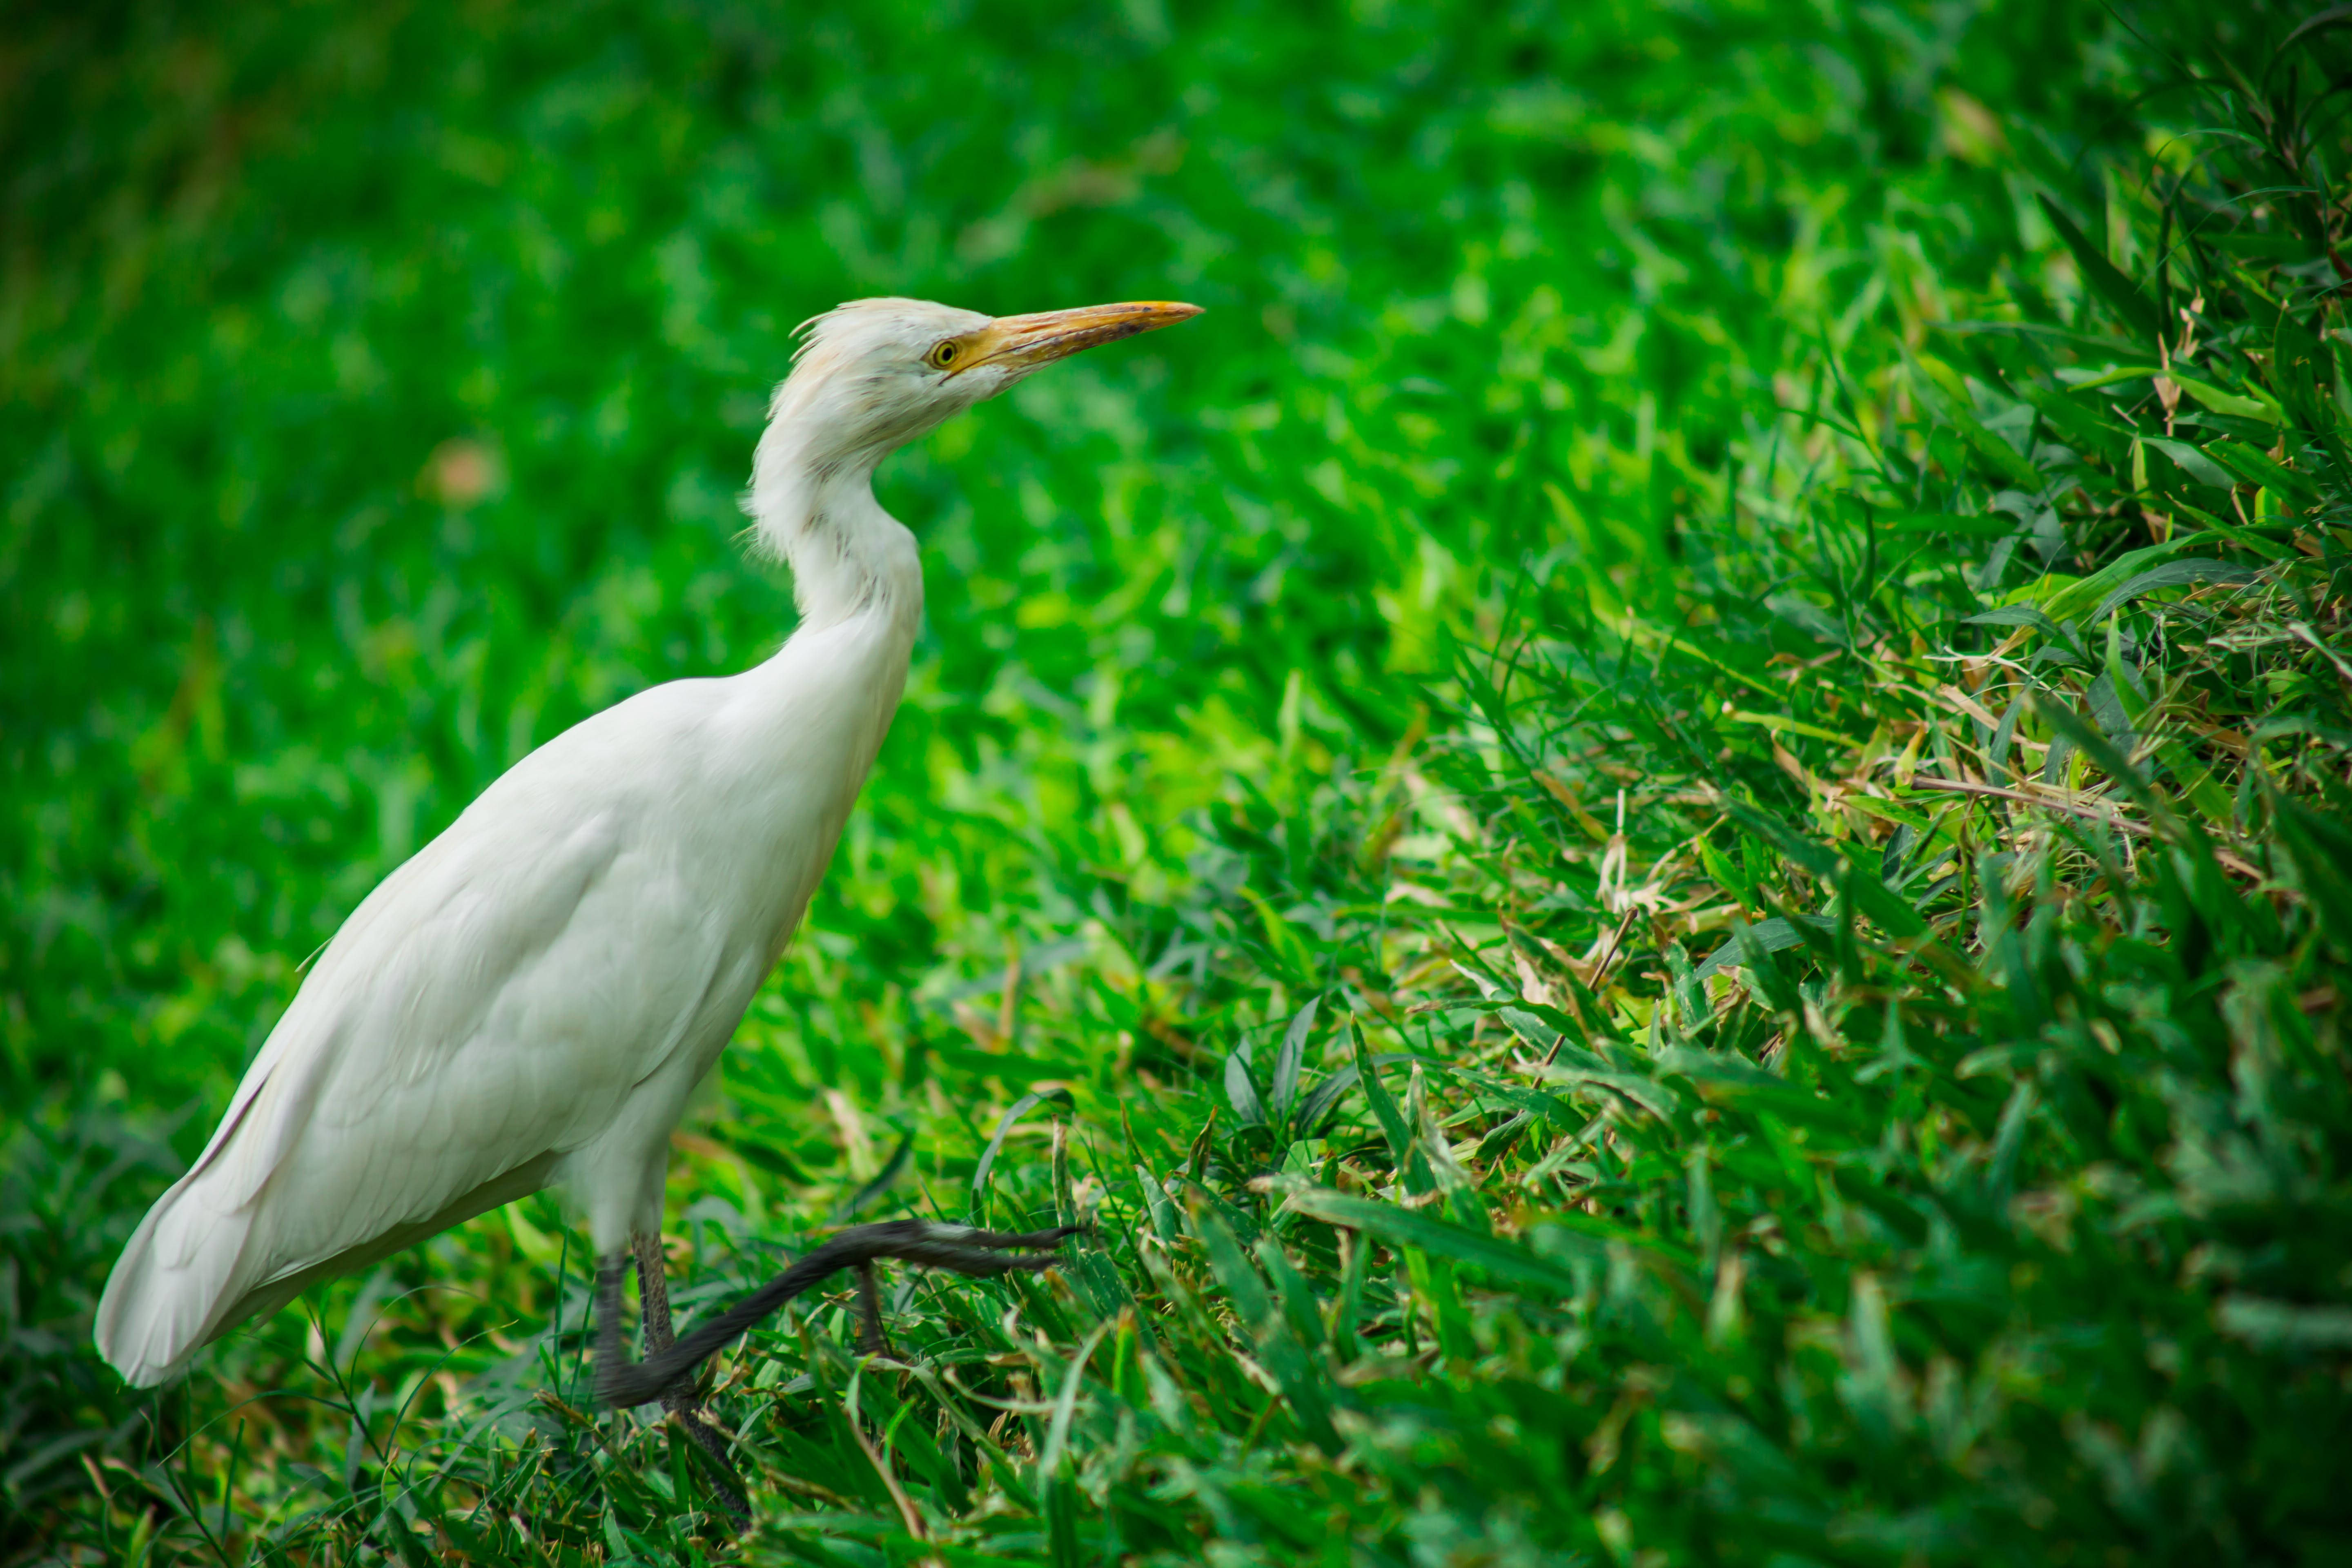 White Bird on Grass